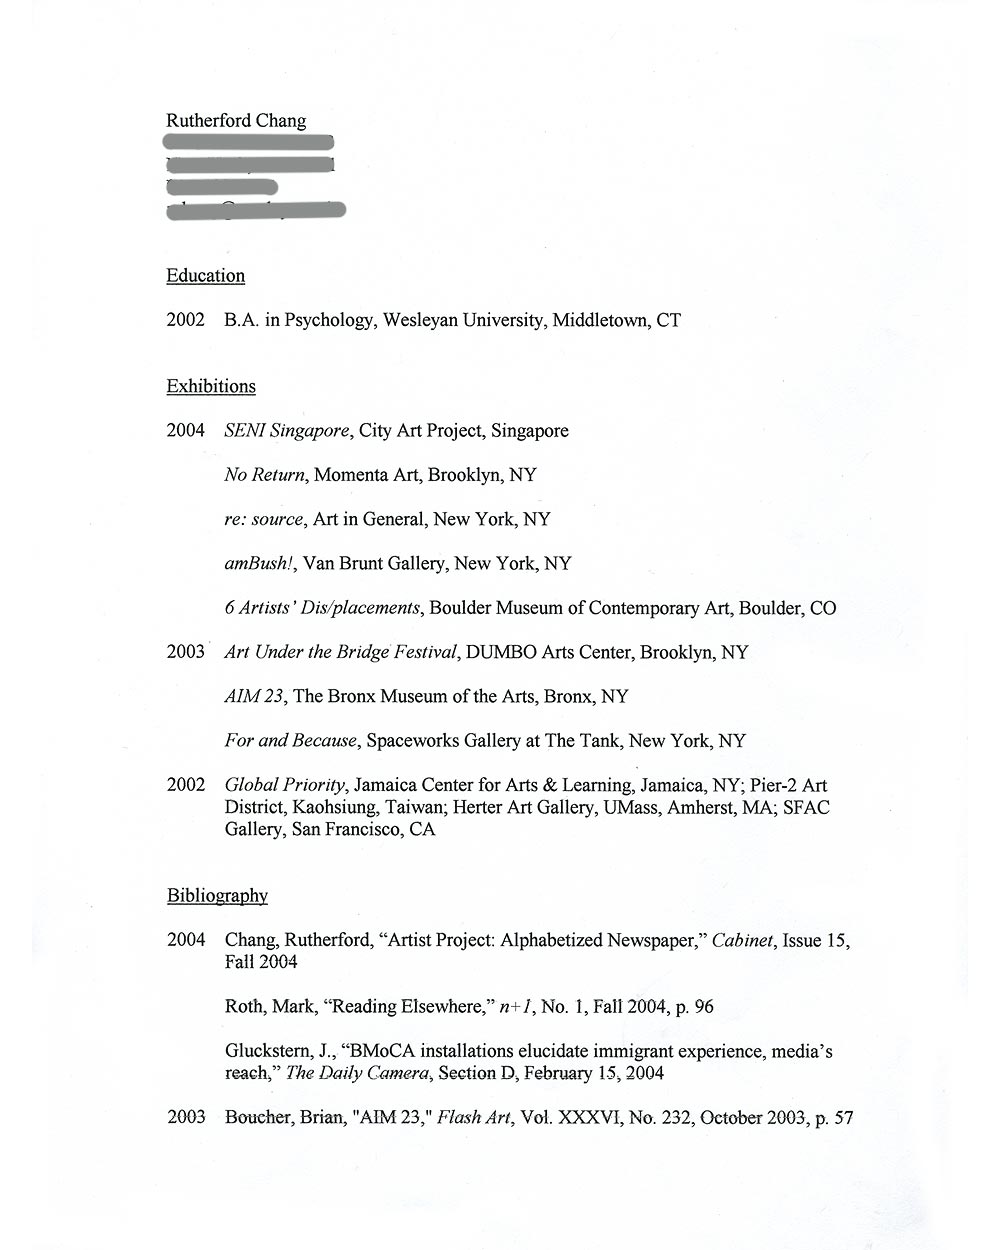 Rutherford Chang's resume, pg 1